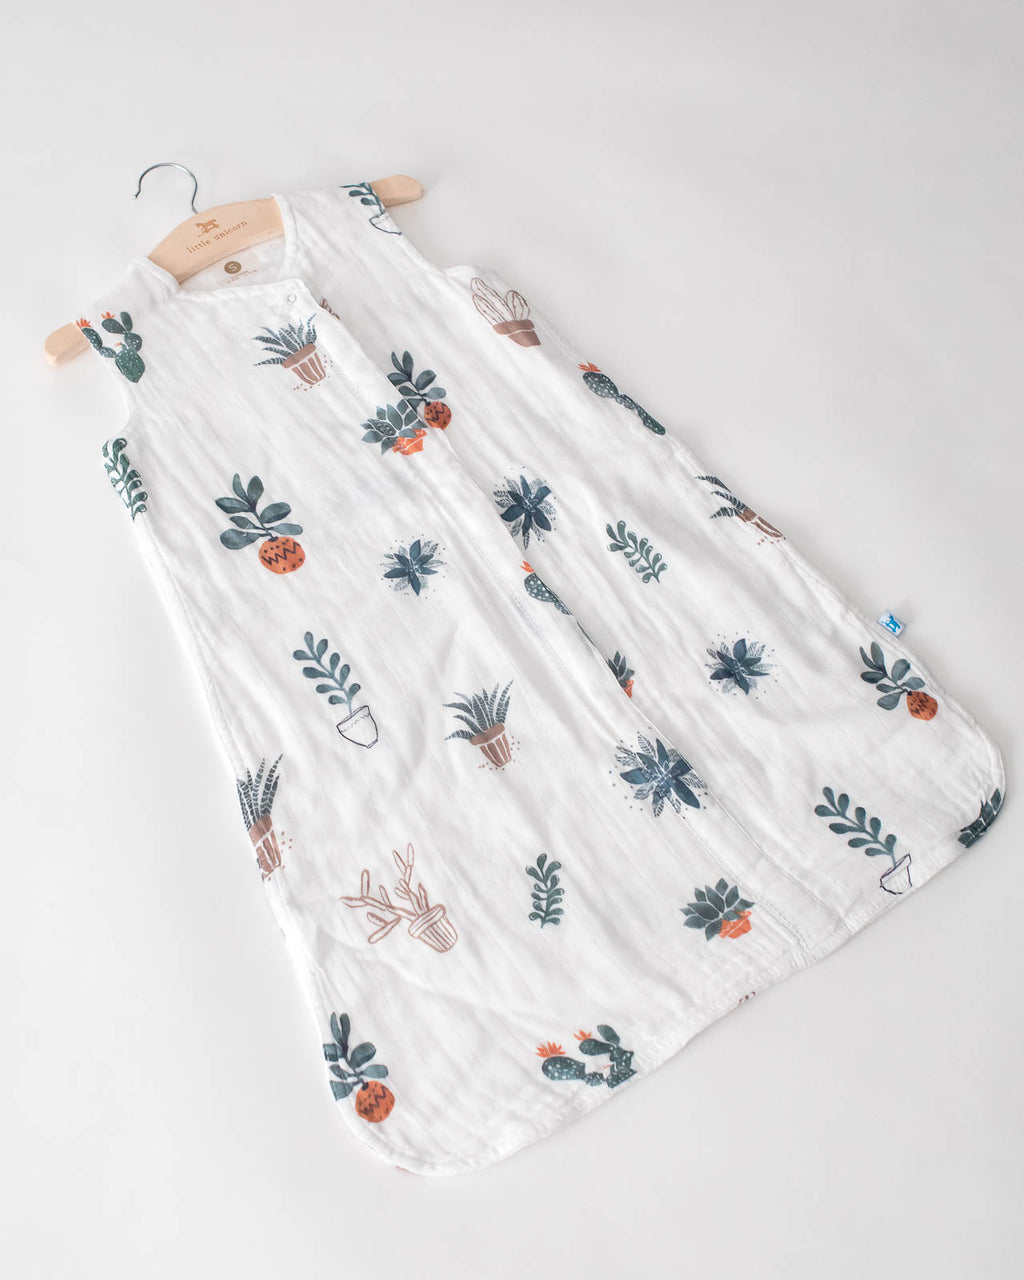 Cotton Muslin Sleep Bag Small - Prickle Pots